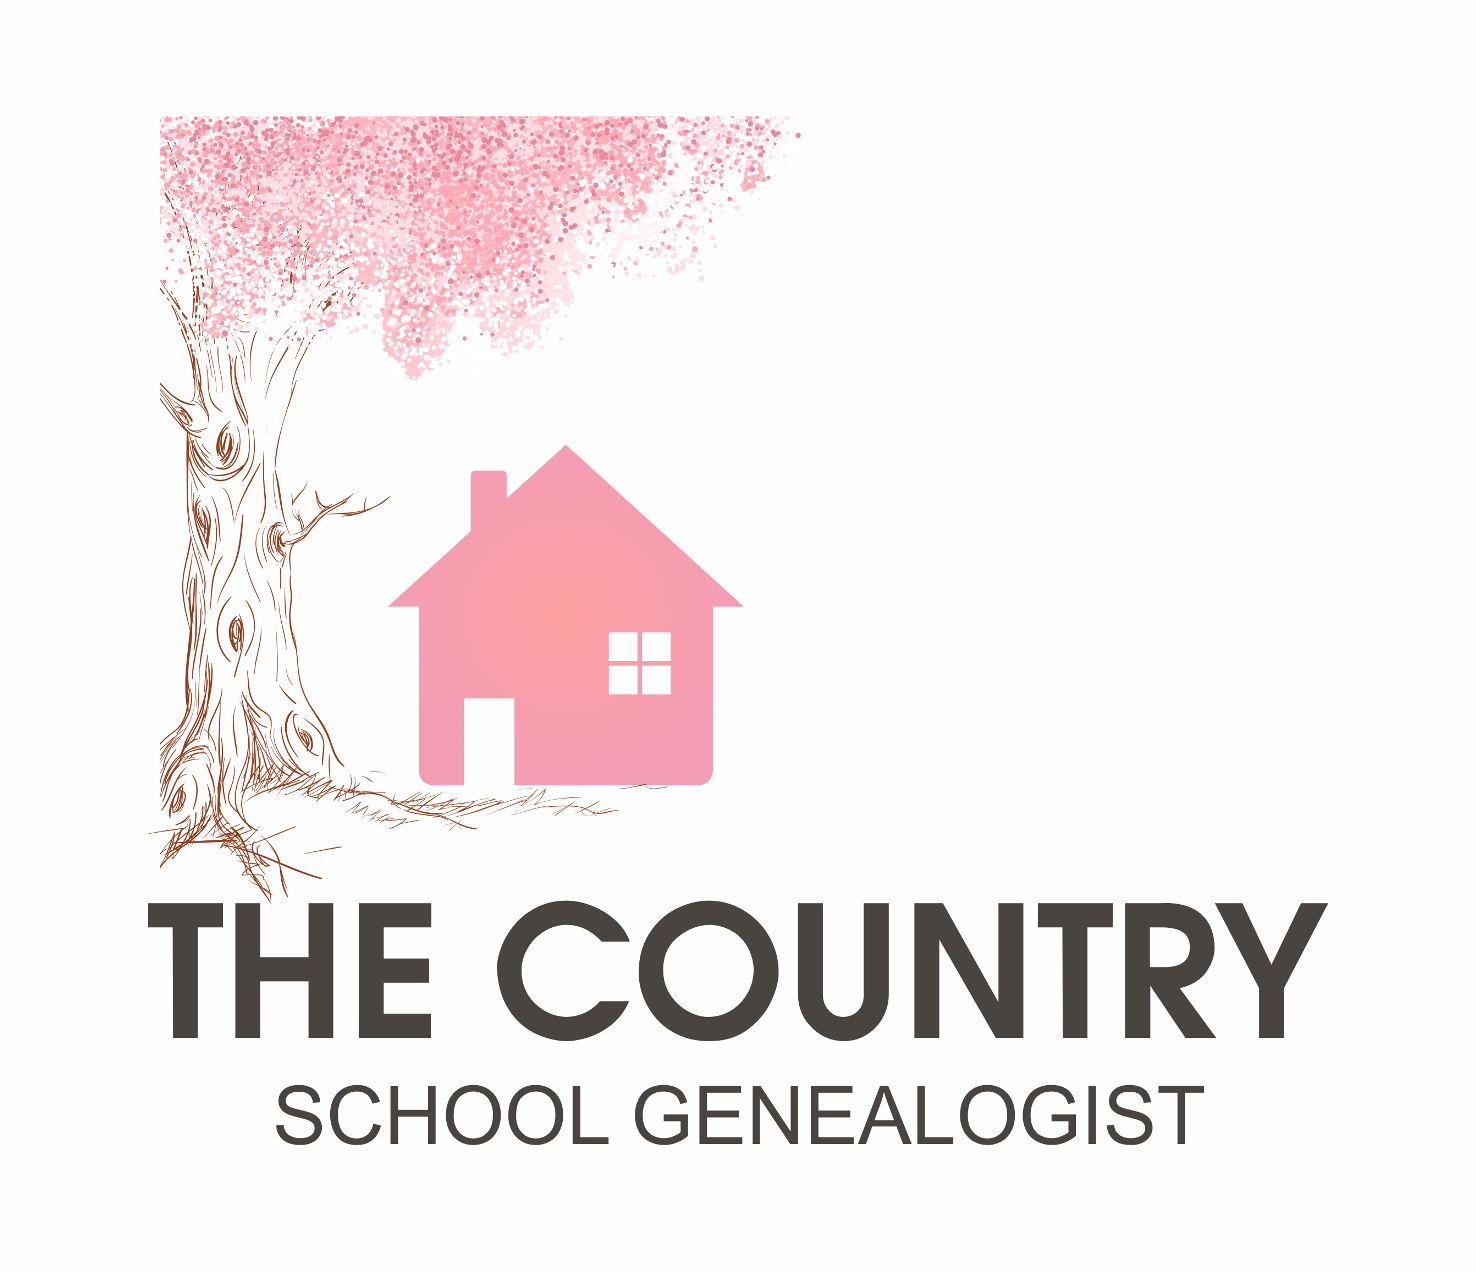 The Country House Company logo design for the country school genealogist by adeikhan